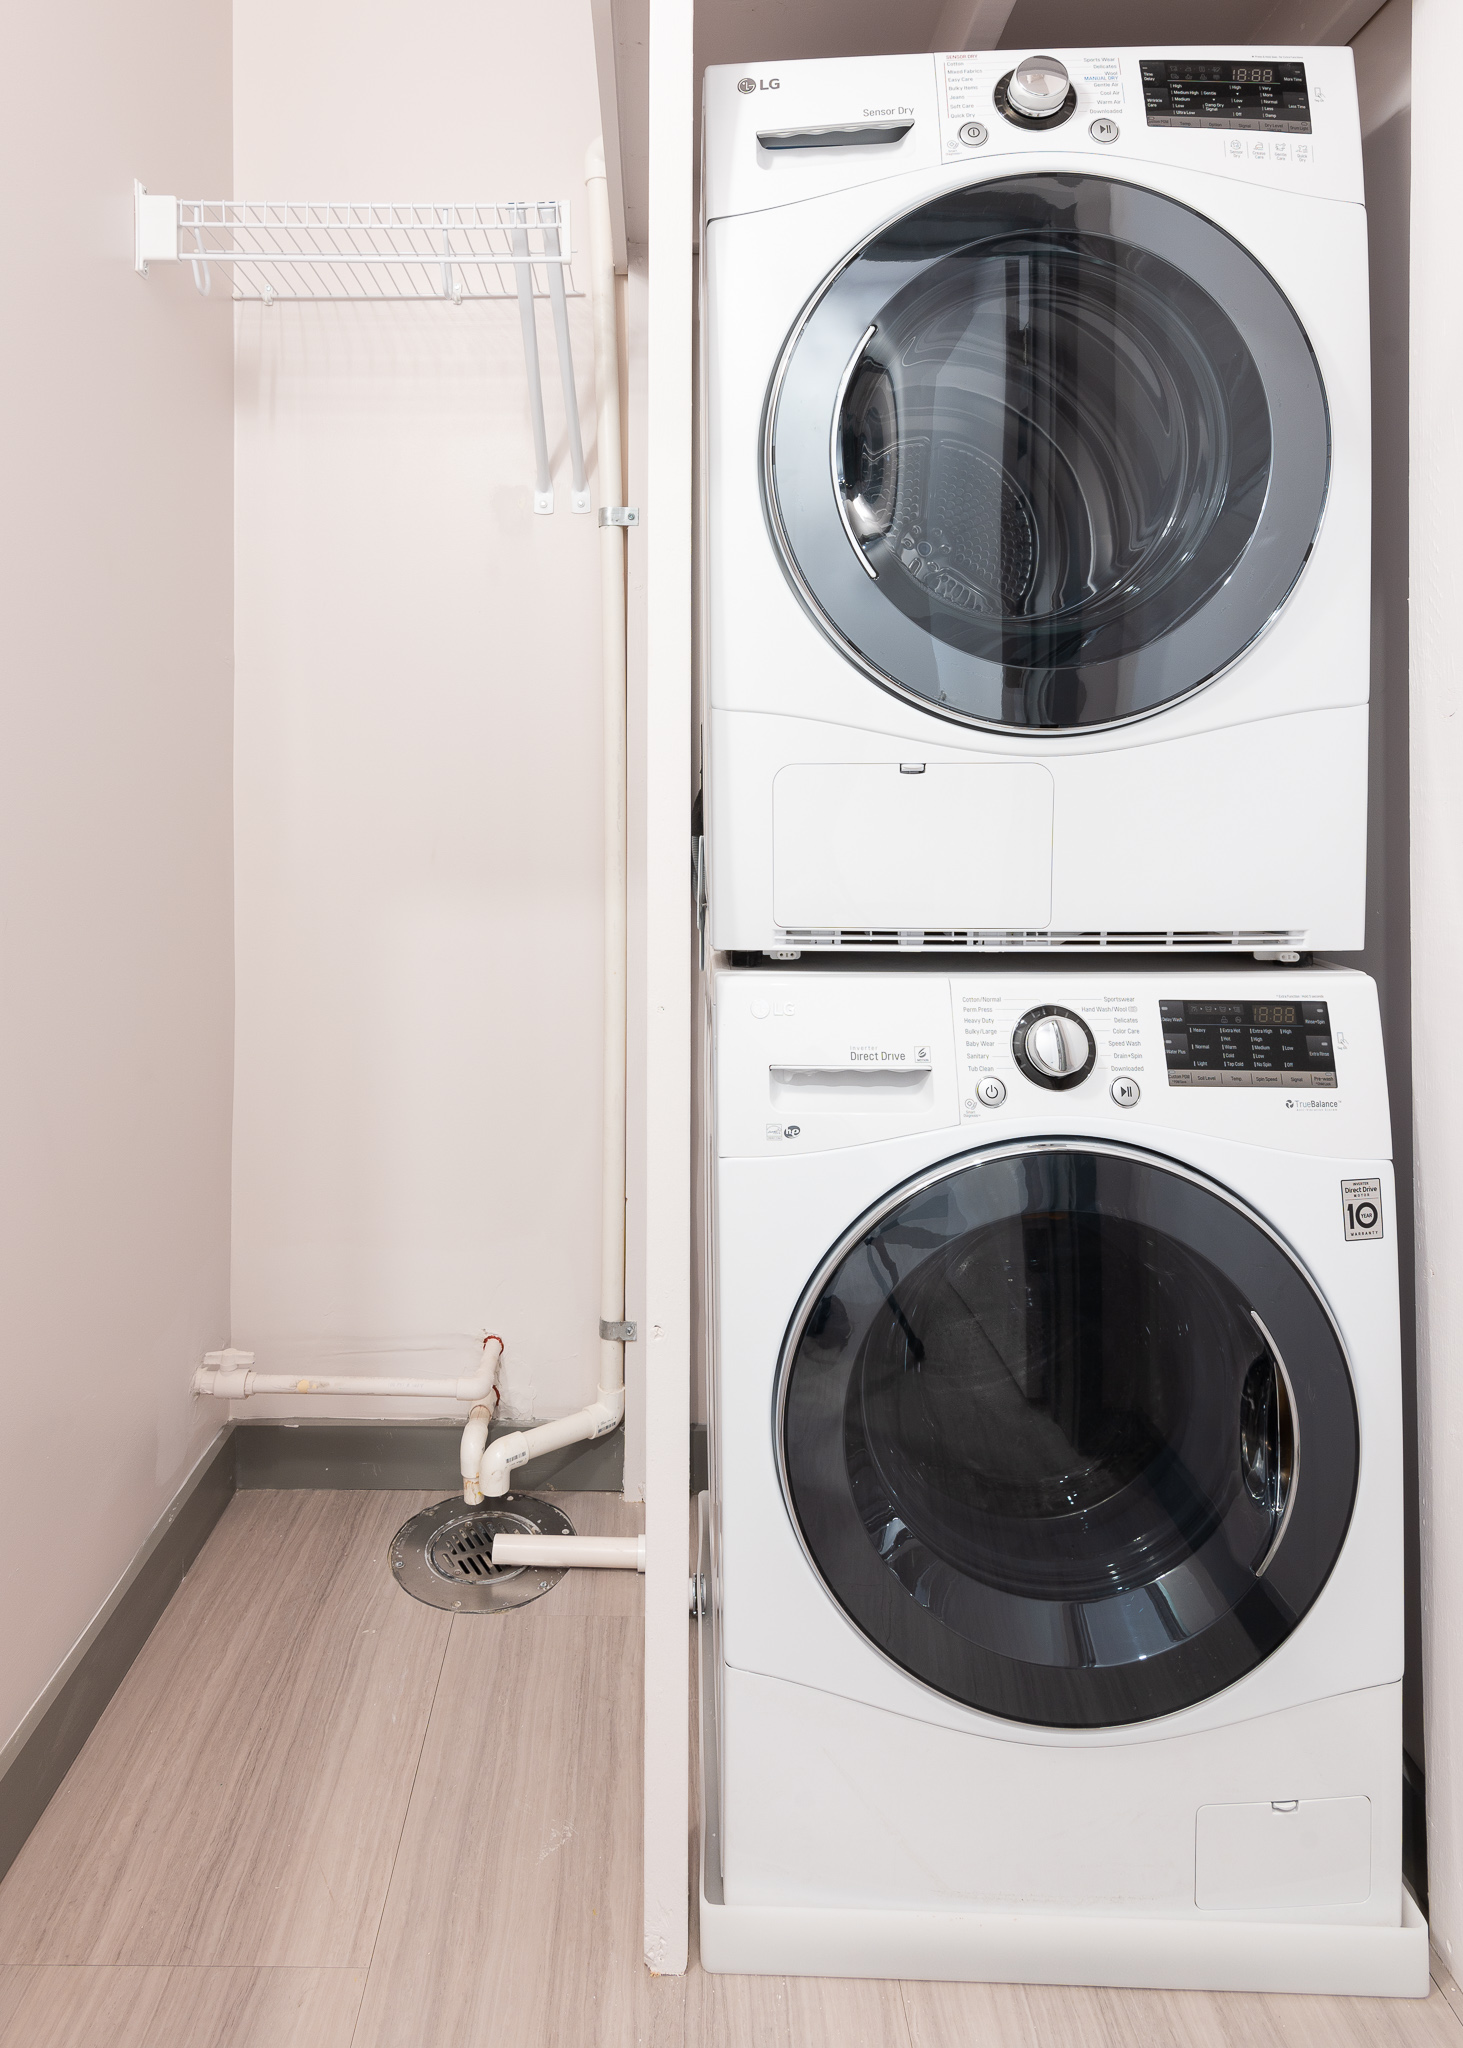 All apartments come equipped with in-unit stacked washers and dryers inside utility closets.{ }/ Image: Phil Armstrong, Cincinnati Refined // Published: 12.25.19